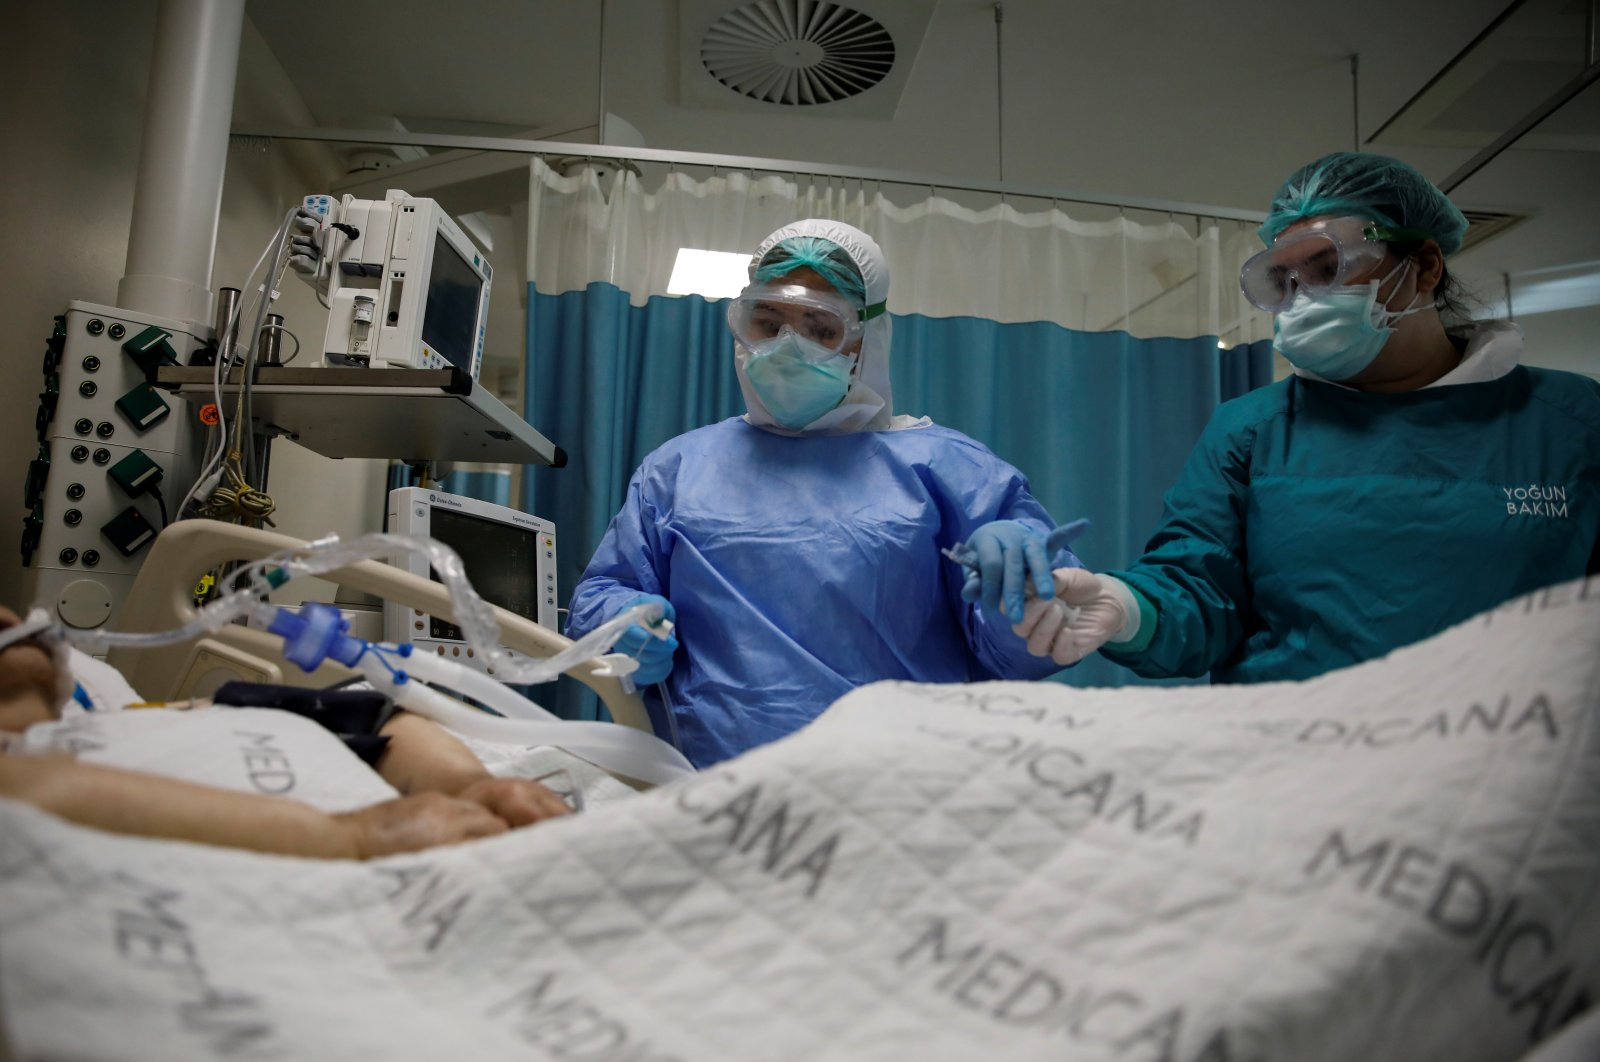 Nurses take care of a patient suffering from COVID-19 at an intensive care unit at Medicana International Hospital in Istanbul, Turkey, April 14, 2020. (Reuters Photo)